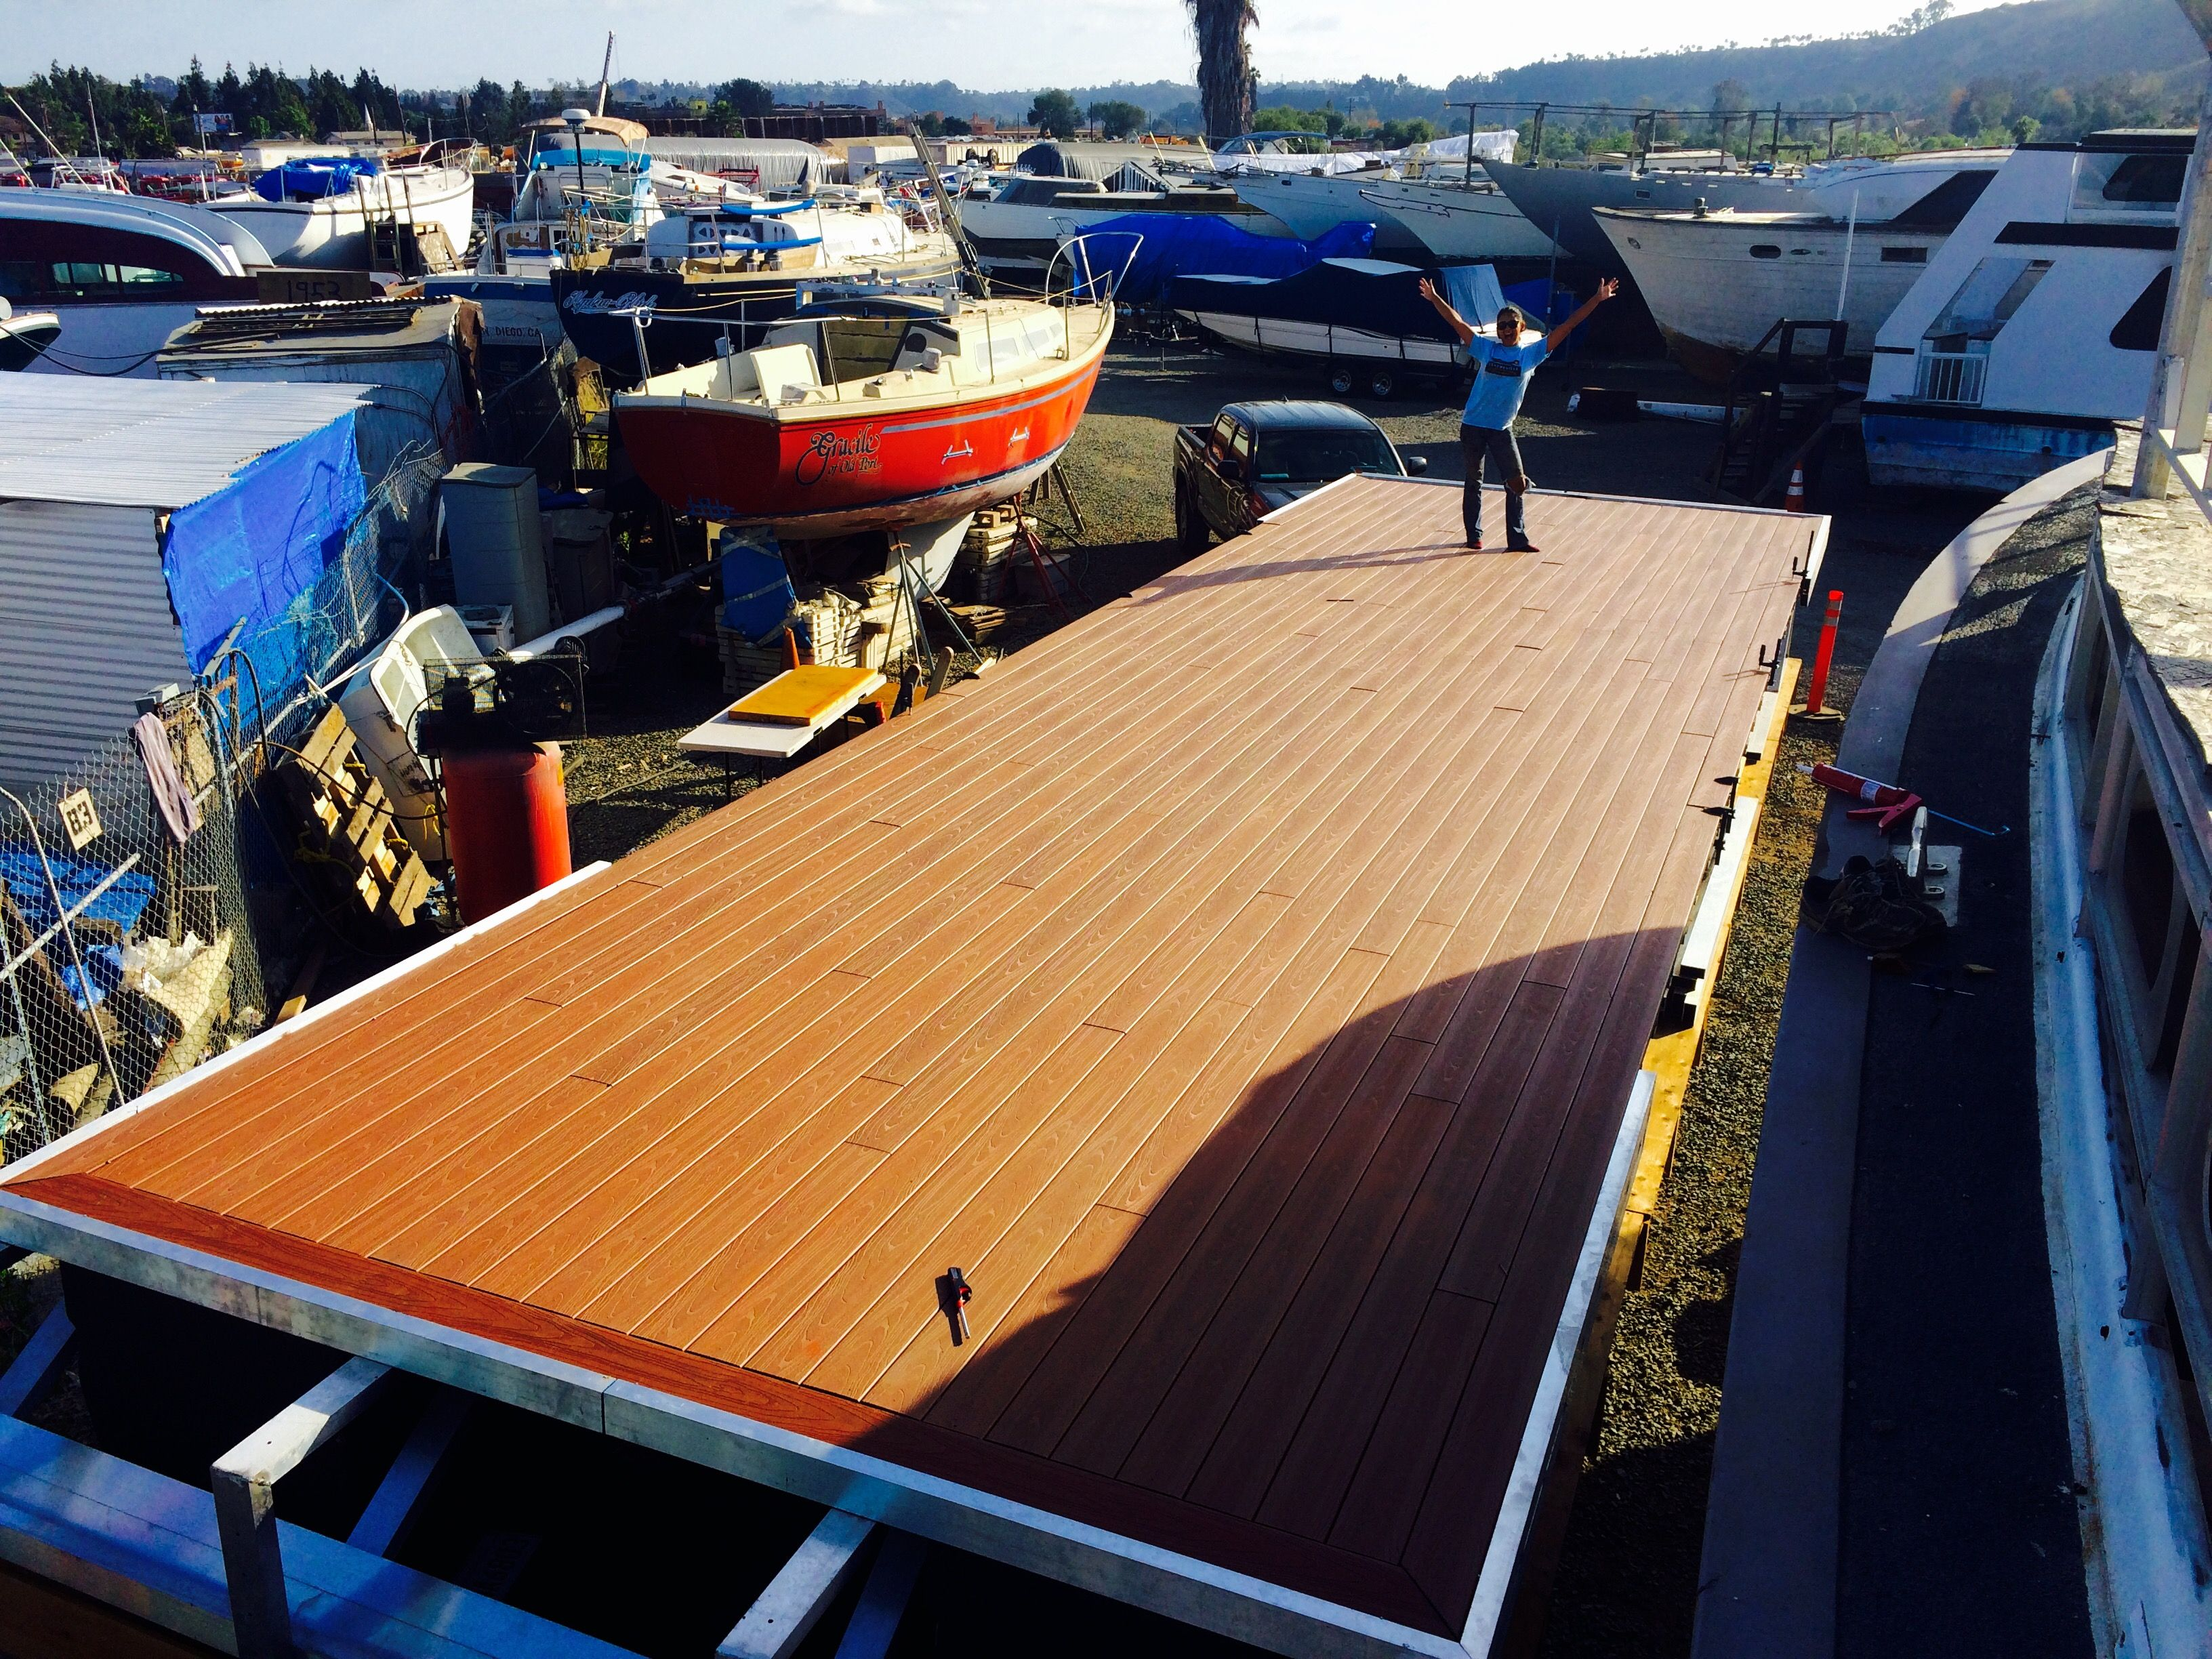 Composite Decking All Finished Www Sandiegopontoon Com San Diego Pontoon Boat Rental Pontoon Boat Pontoon Composite Decking